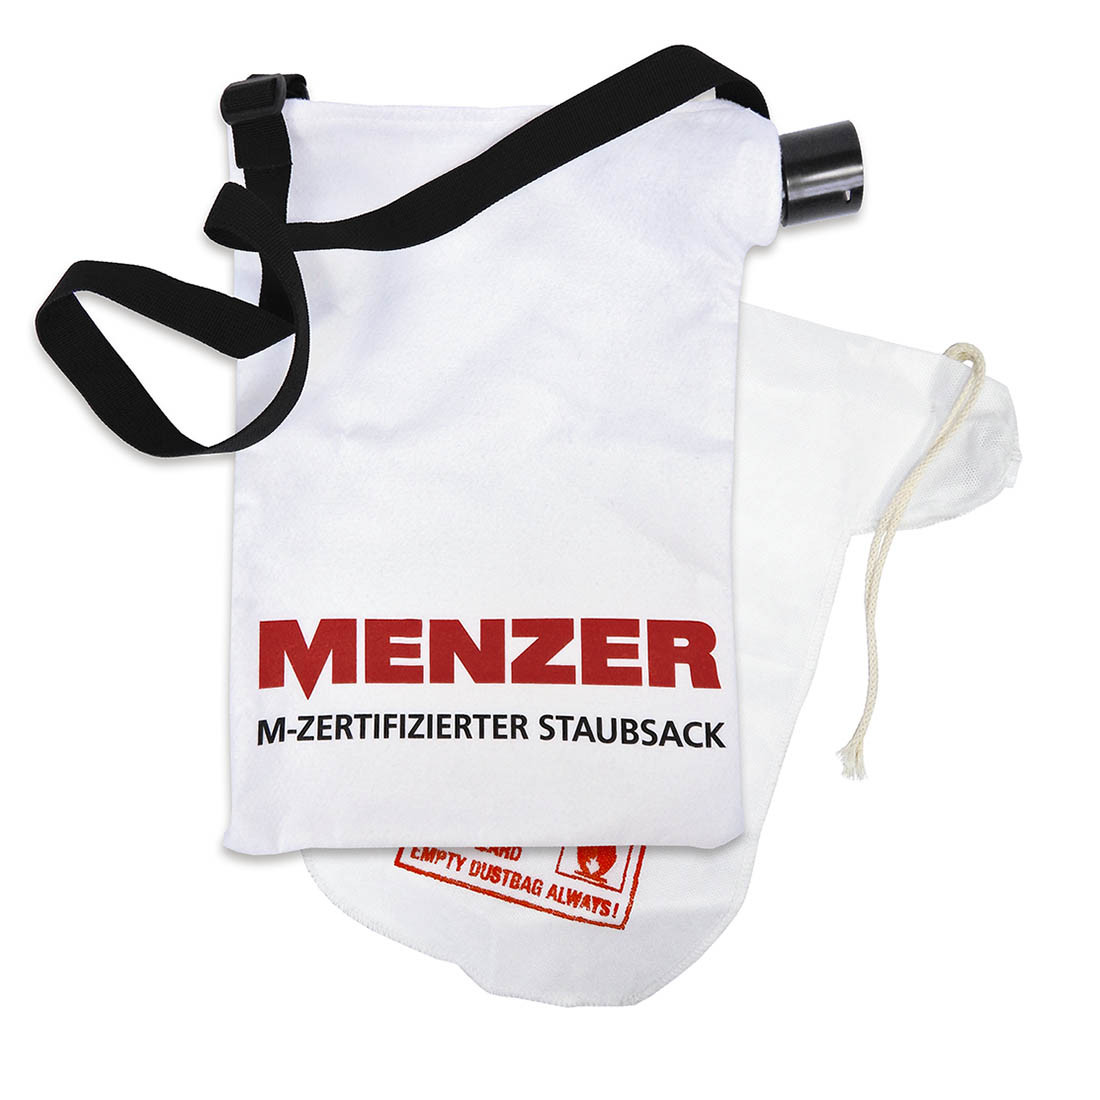 MENZER Kit aspiration